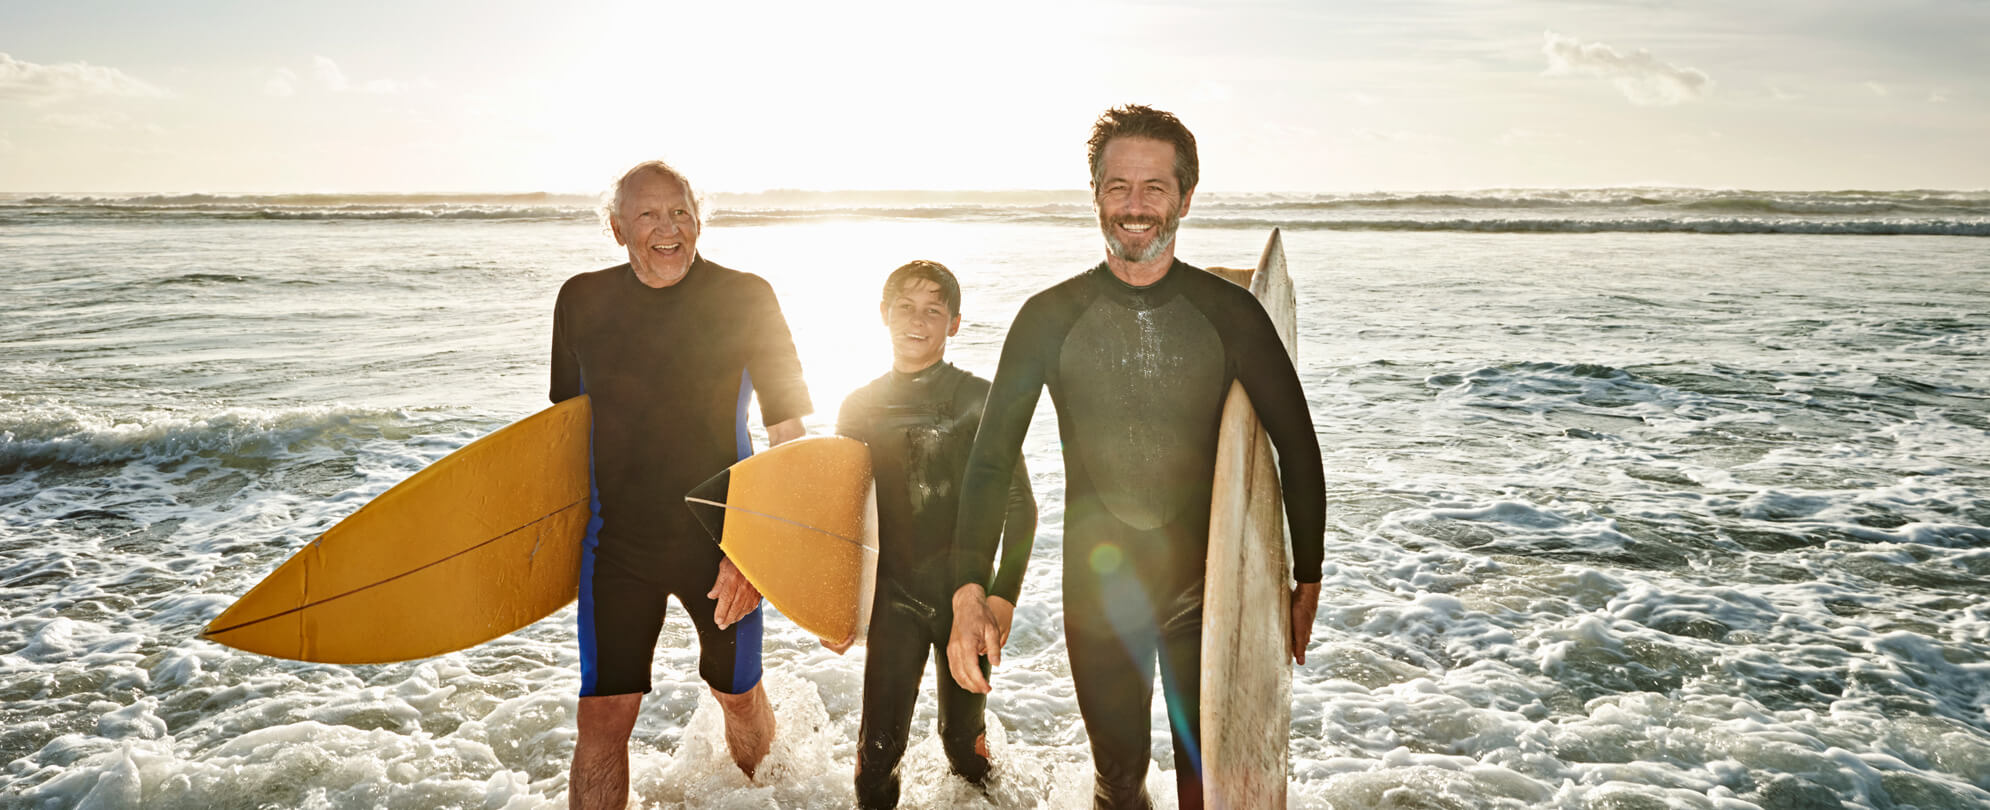 Grandfather, father, and son walking on to the shore with surfboards in hand